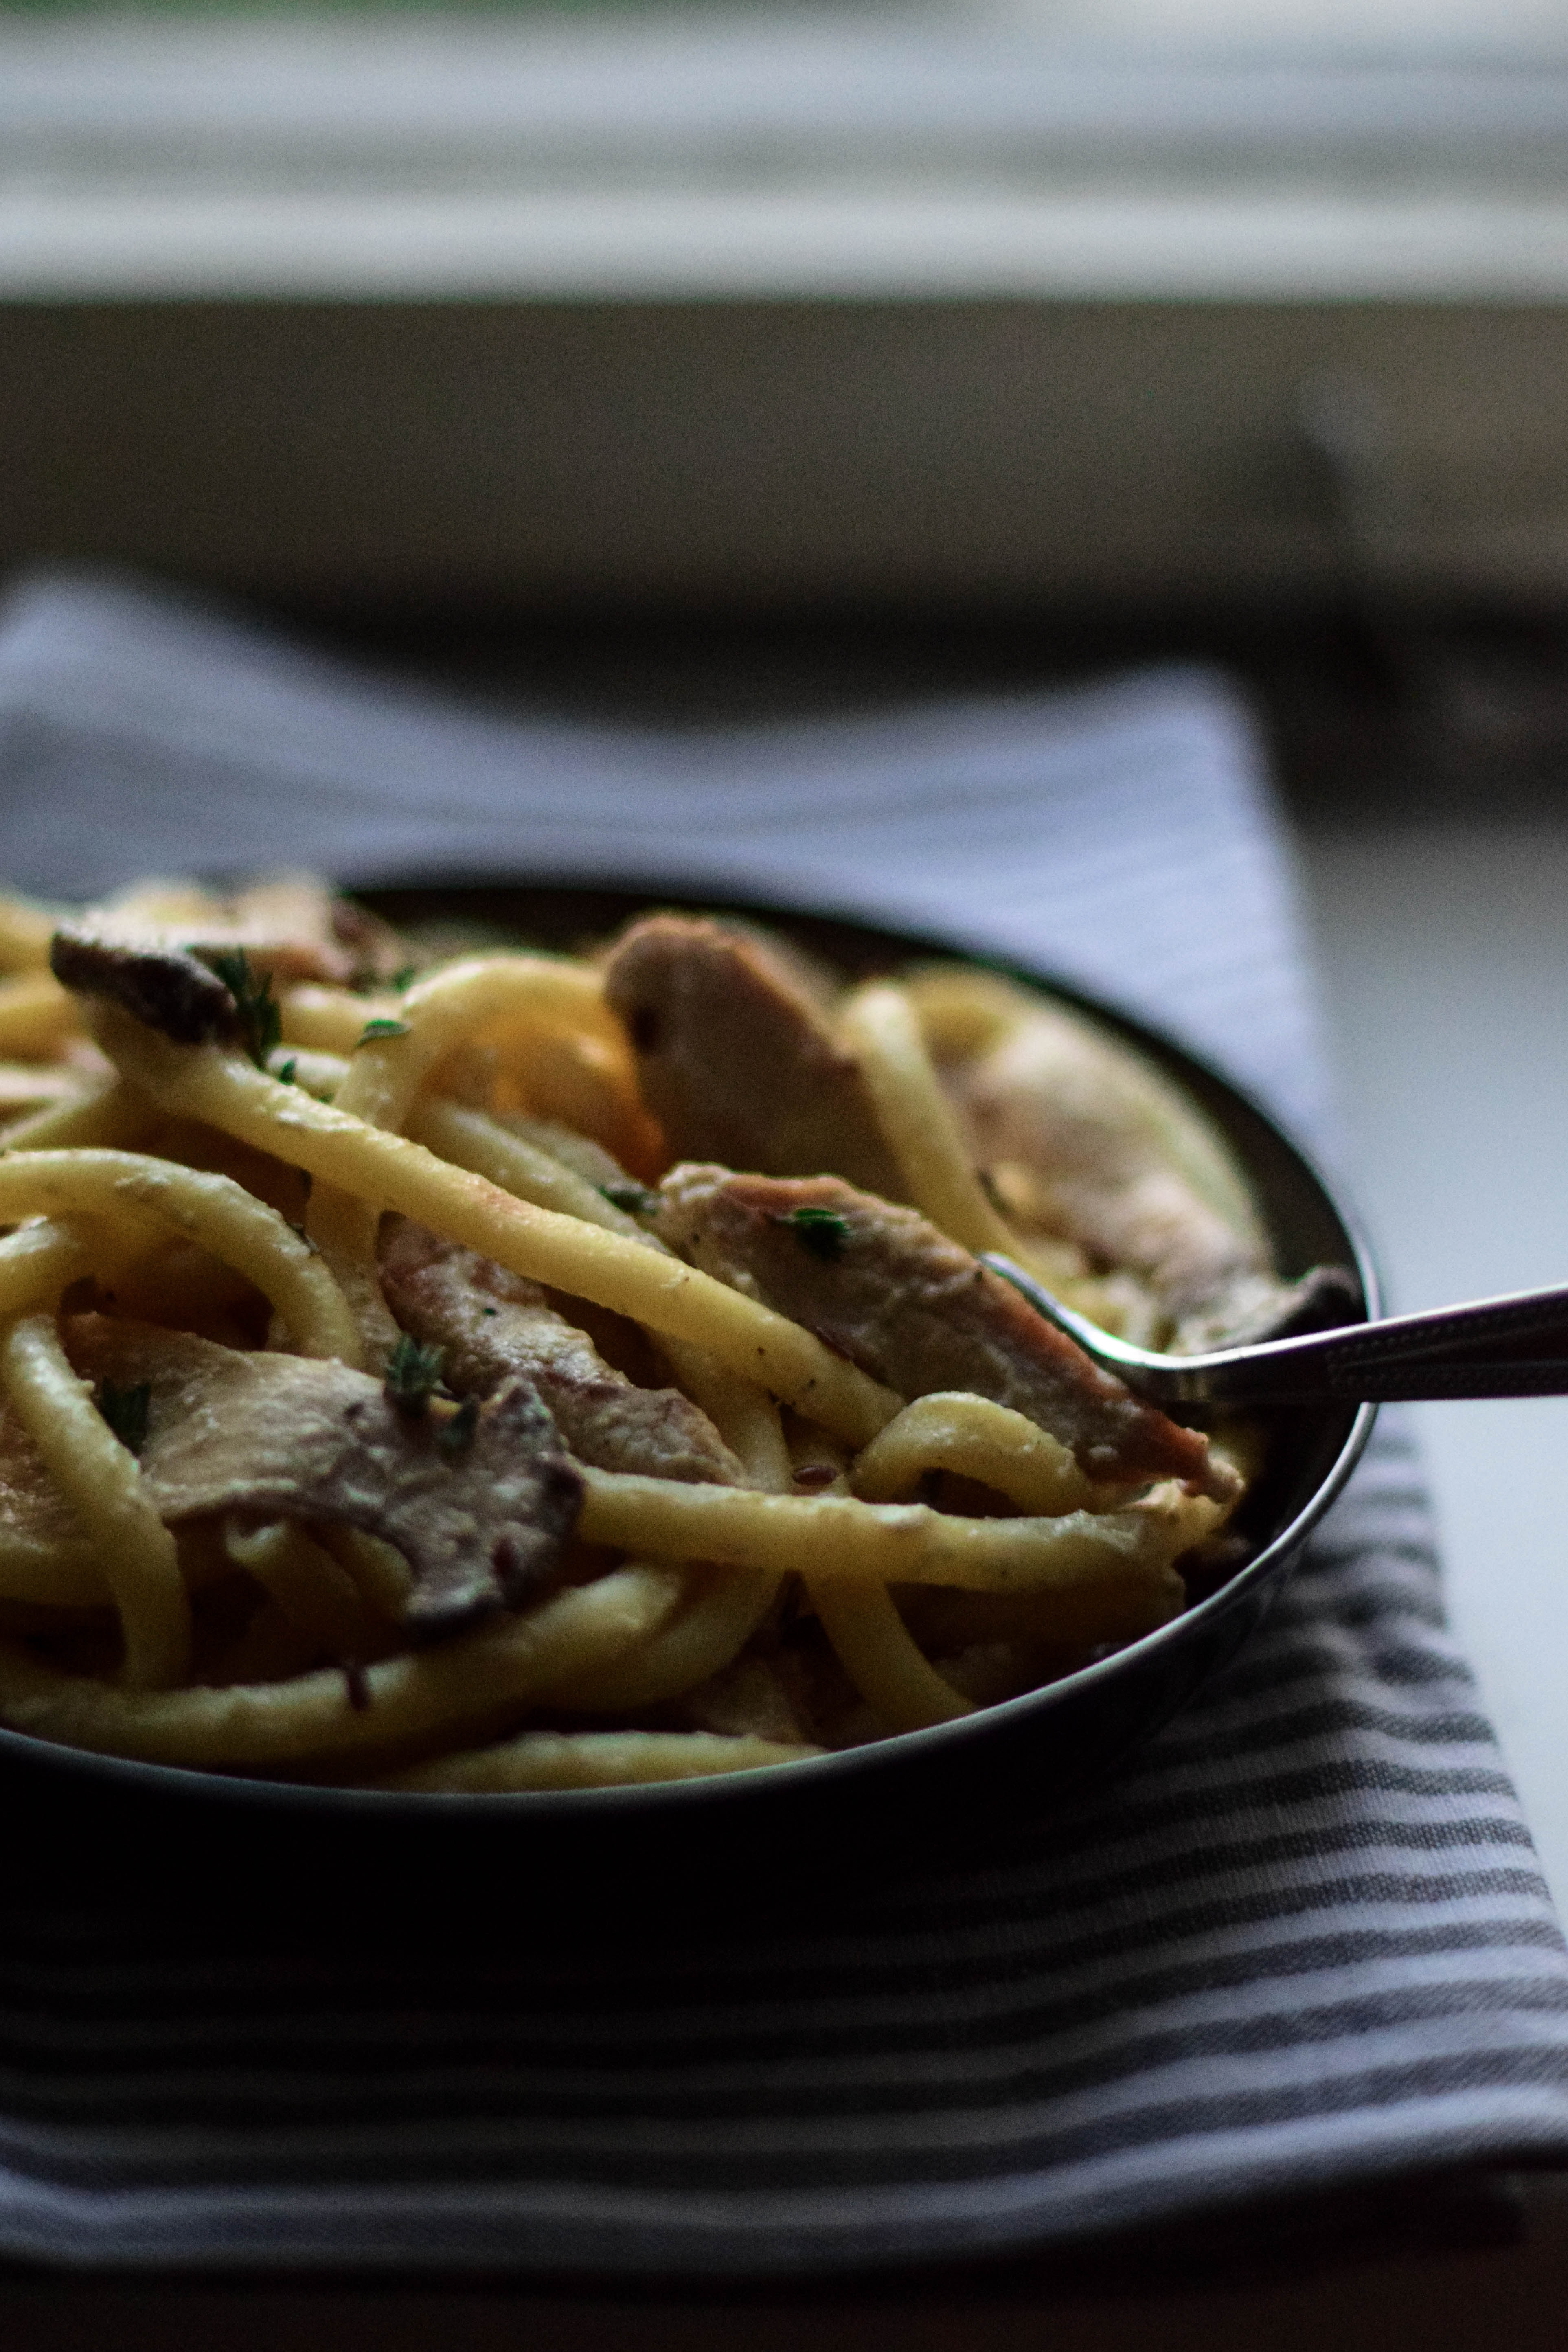 Creamy macaronis with oyster mushrooms, turkey & thyme